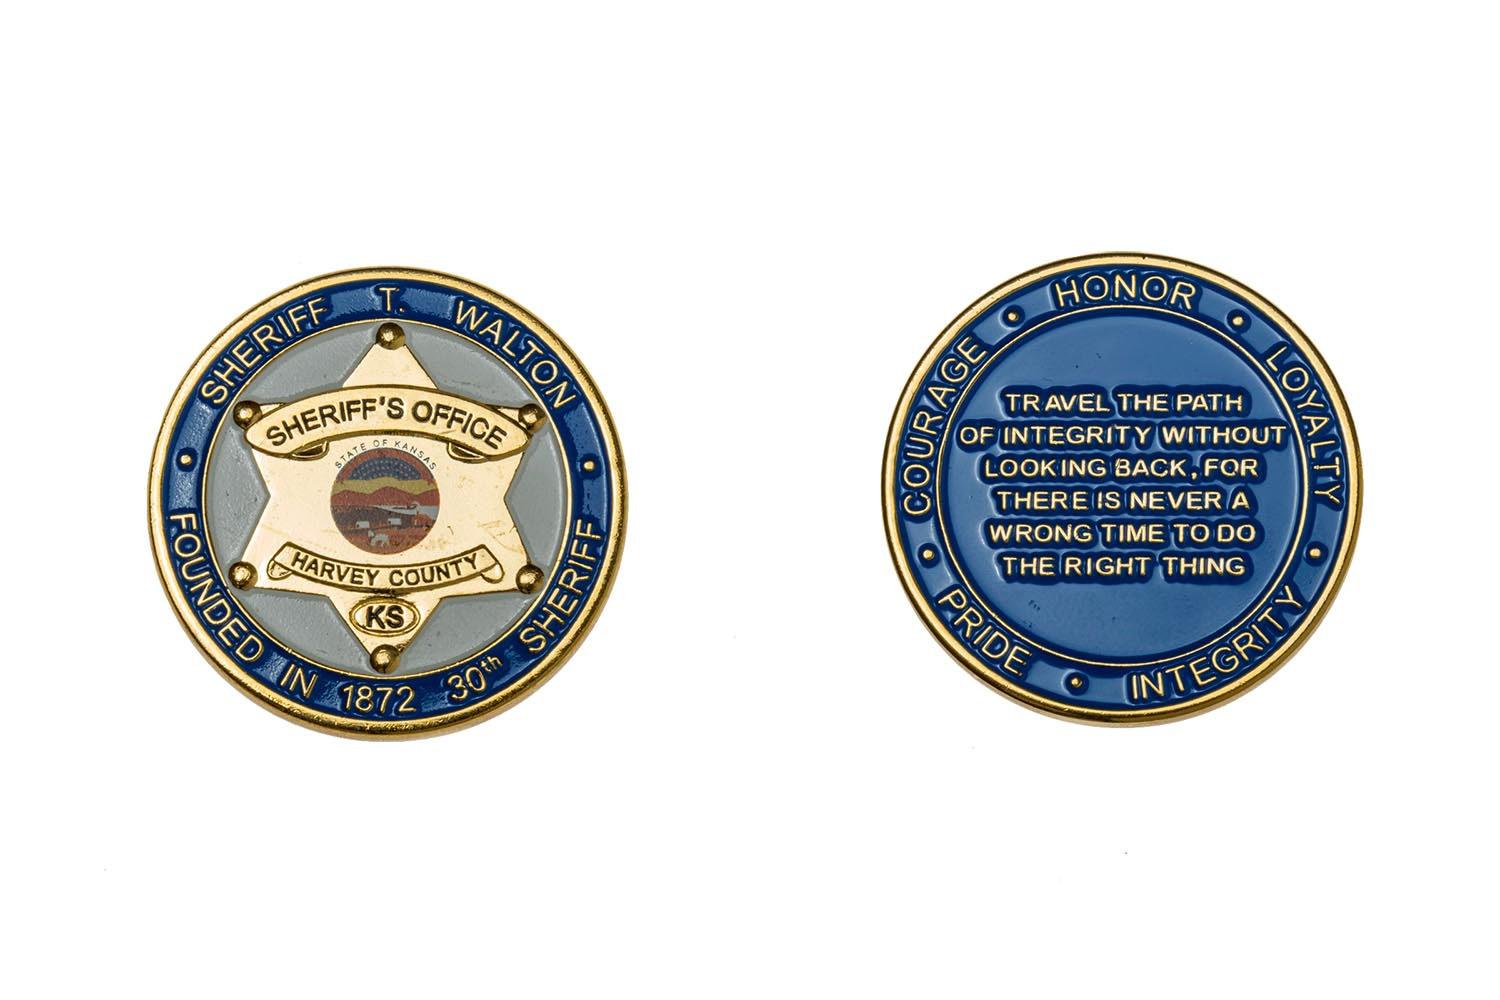 Custom metal sheriff's coins